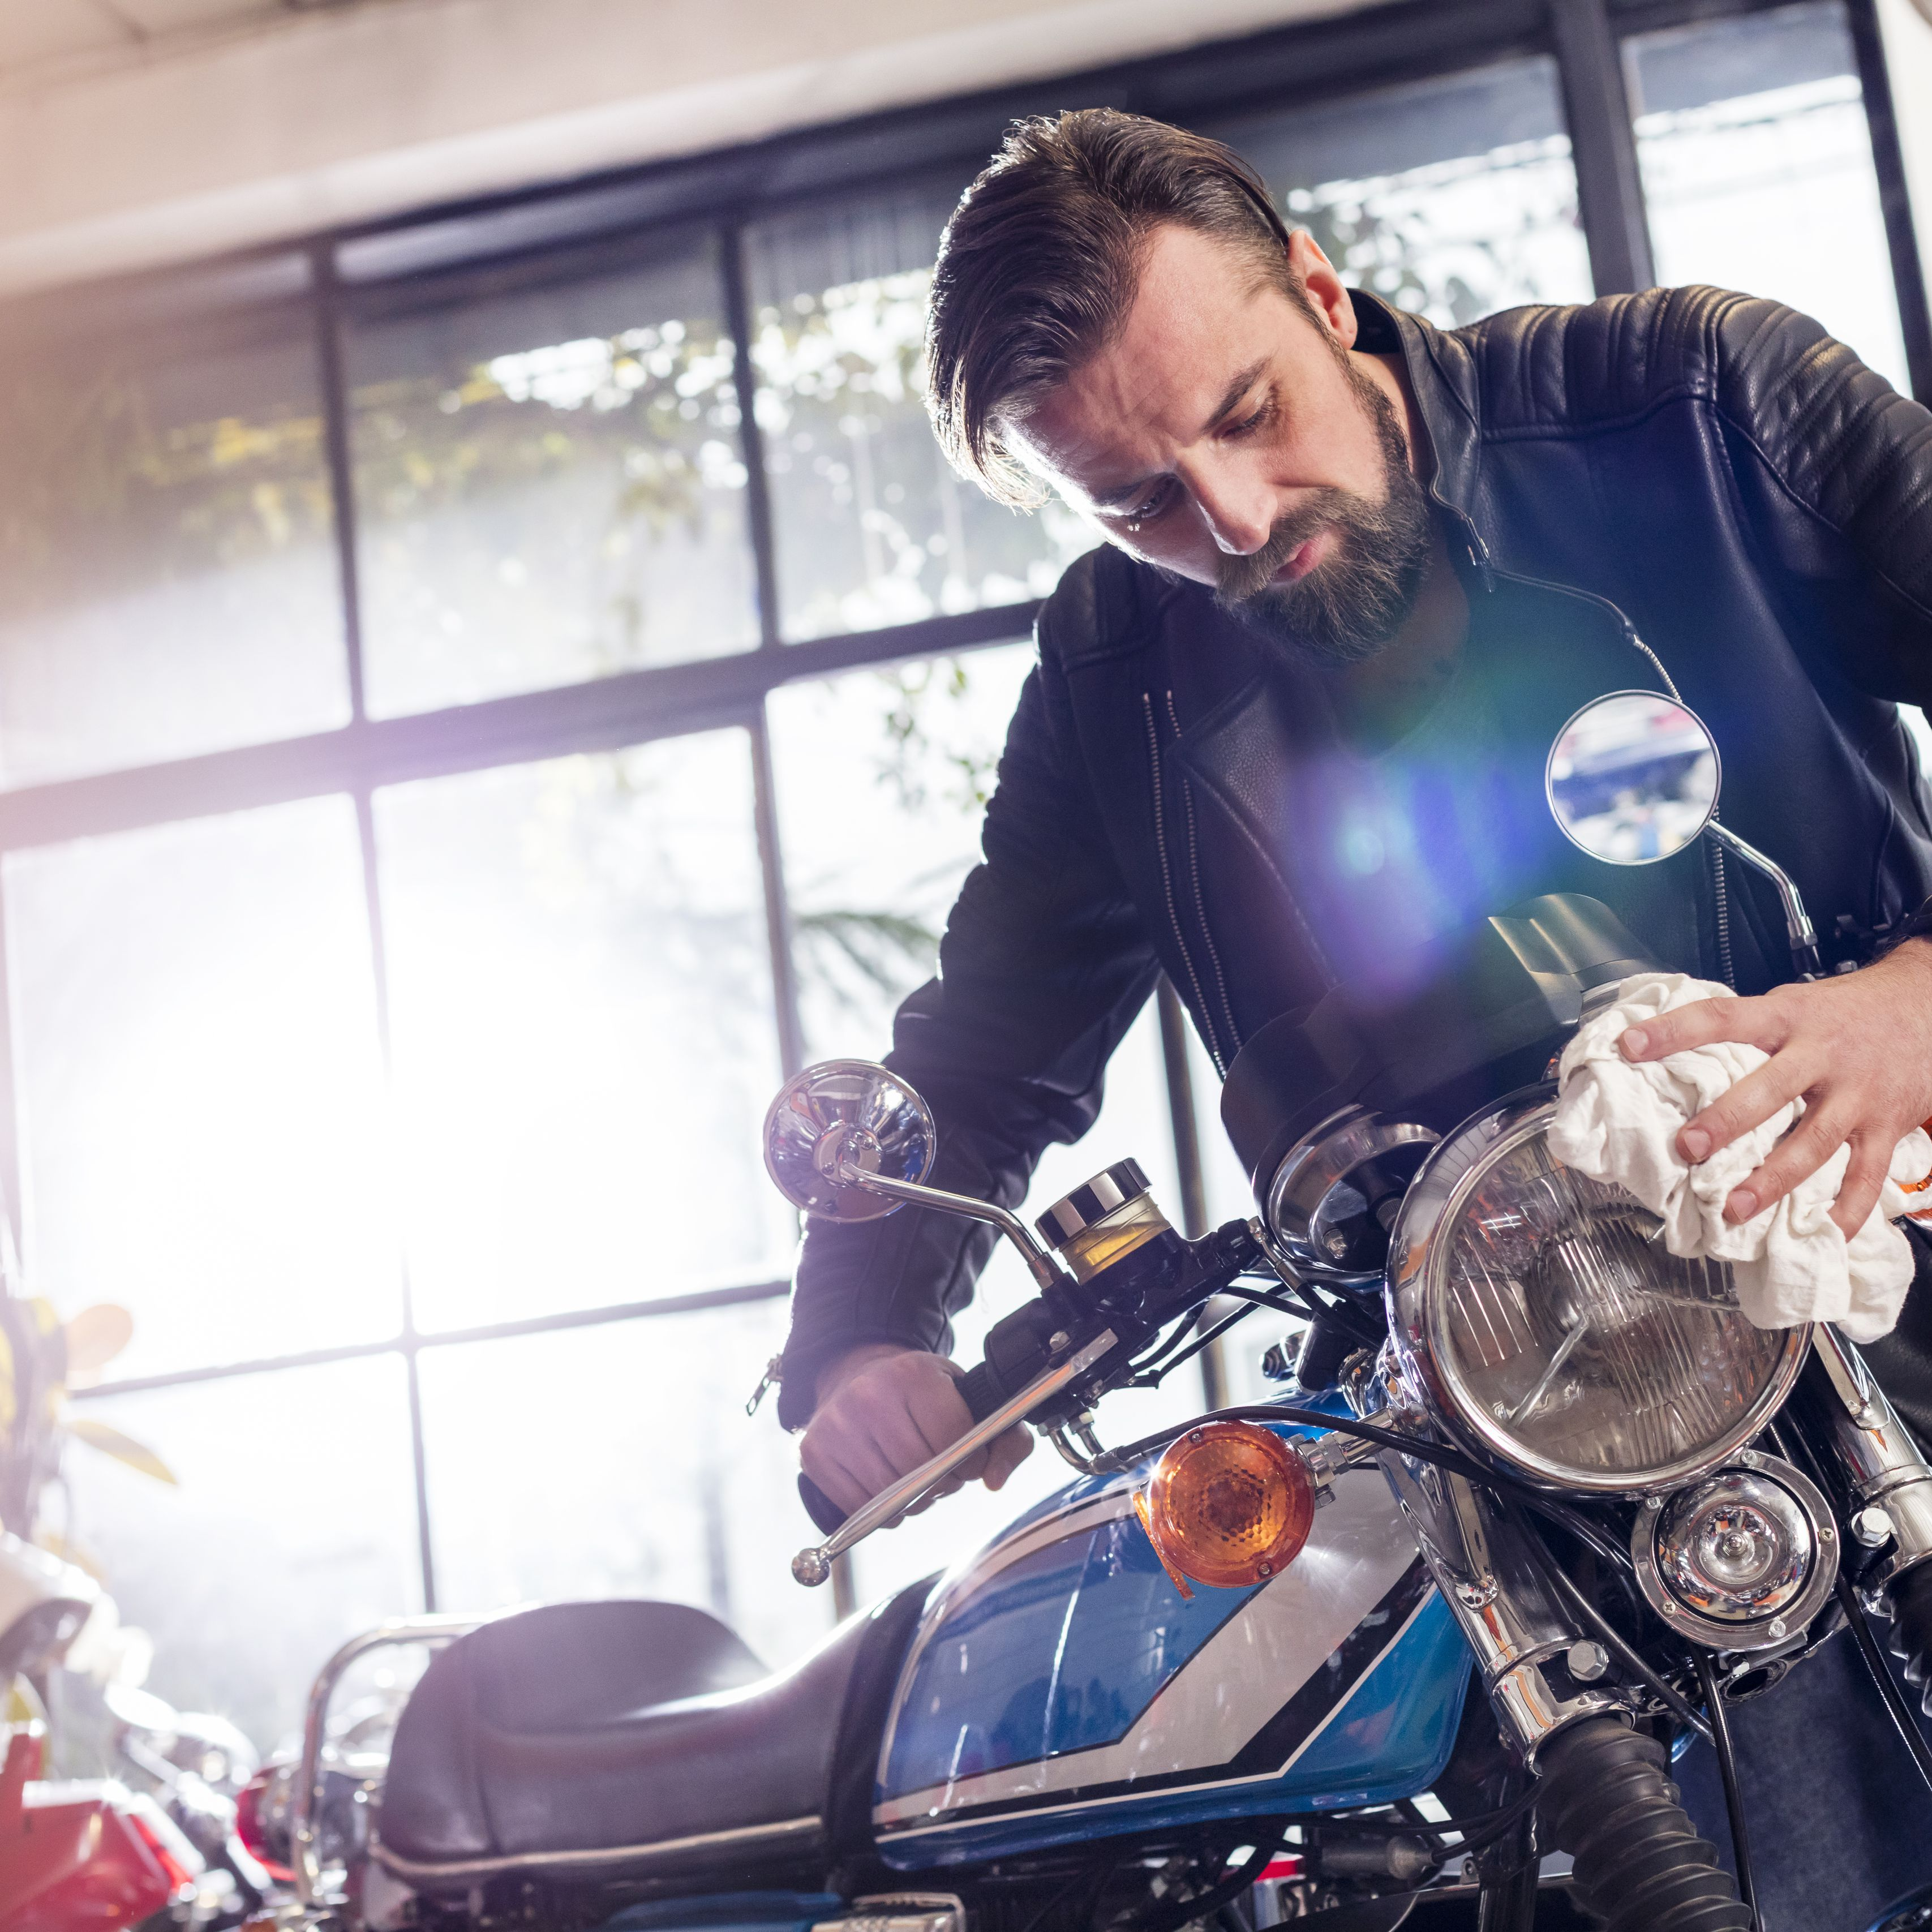 What Will You Learn in a Motorcycle Safety Course?